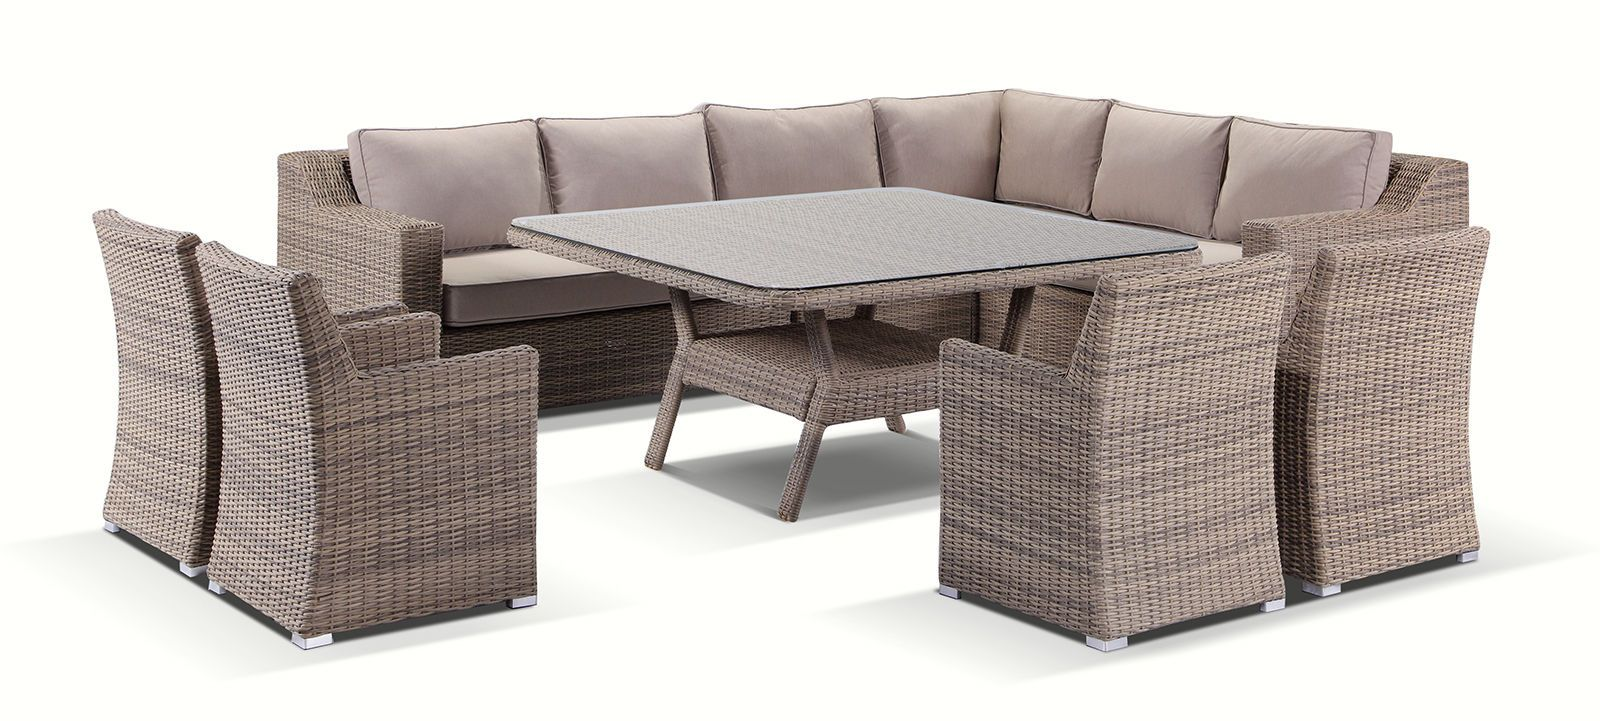 lounge office chair. Outdoor-Wicker-Modular-Lounge-and-Dining-Table-Chairs- Lounge Office Chair A